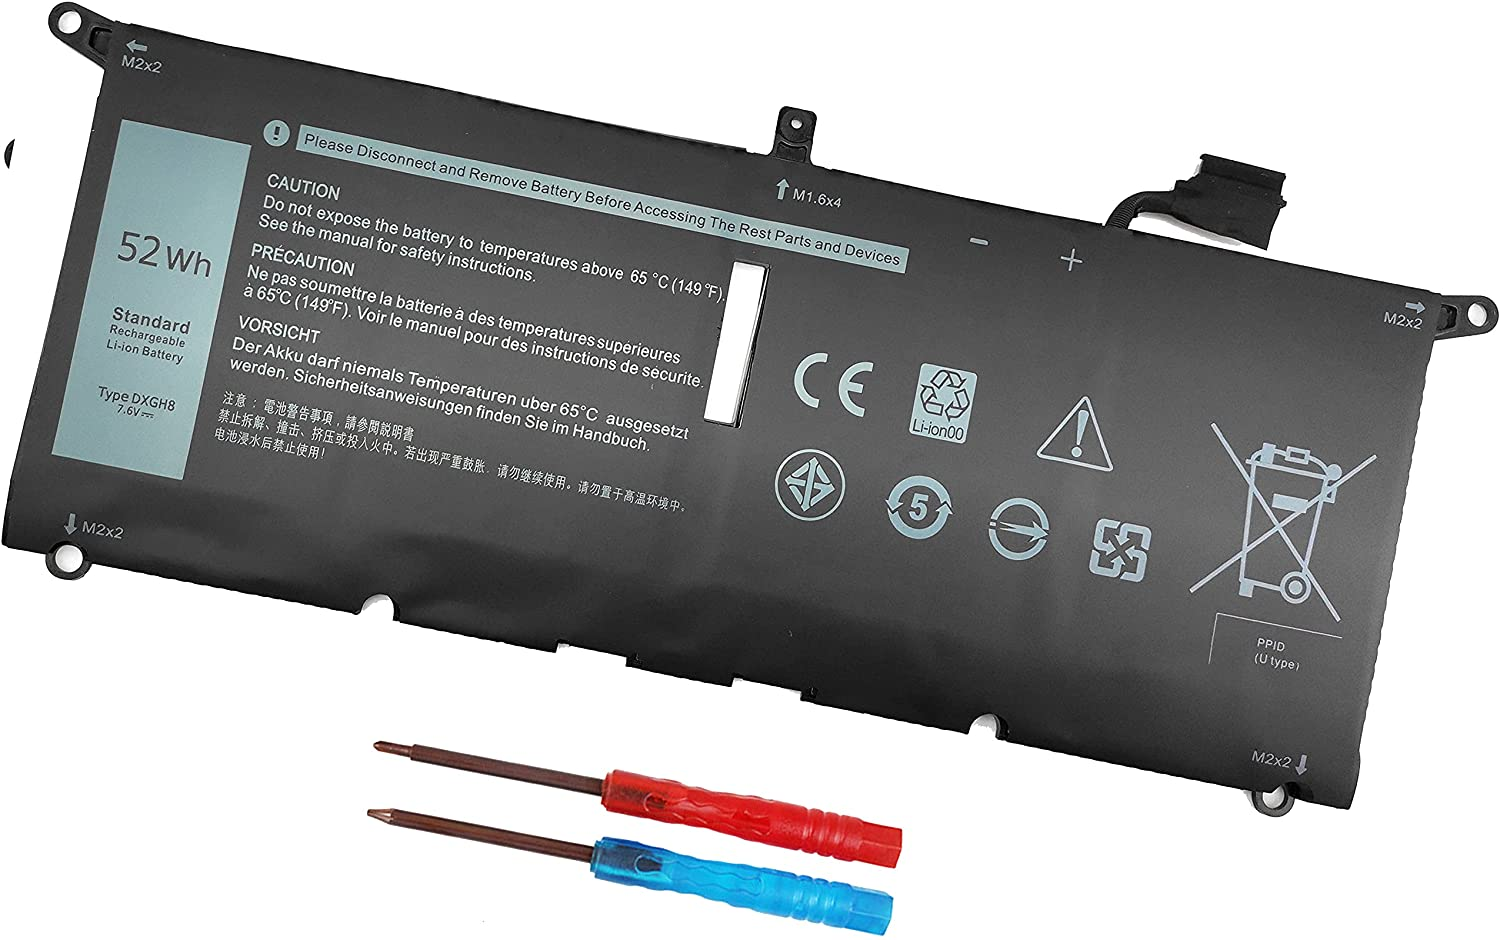 DXGH8 7.6V 52Wh Battery for Dell XPS 13 9370 9380 2019 Inspiron 13 7390 7391 2-in-1 5390 5391 7490 Latitude 3301 E3301 Vostro 5390 5391 Series 0H754V H754V G8VCF G8VCF6C HK6N5 P113G001 P82G P82G001